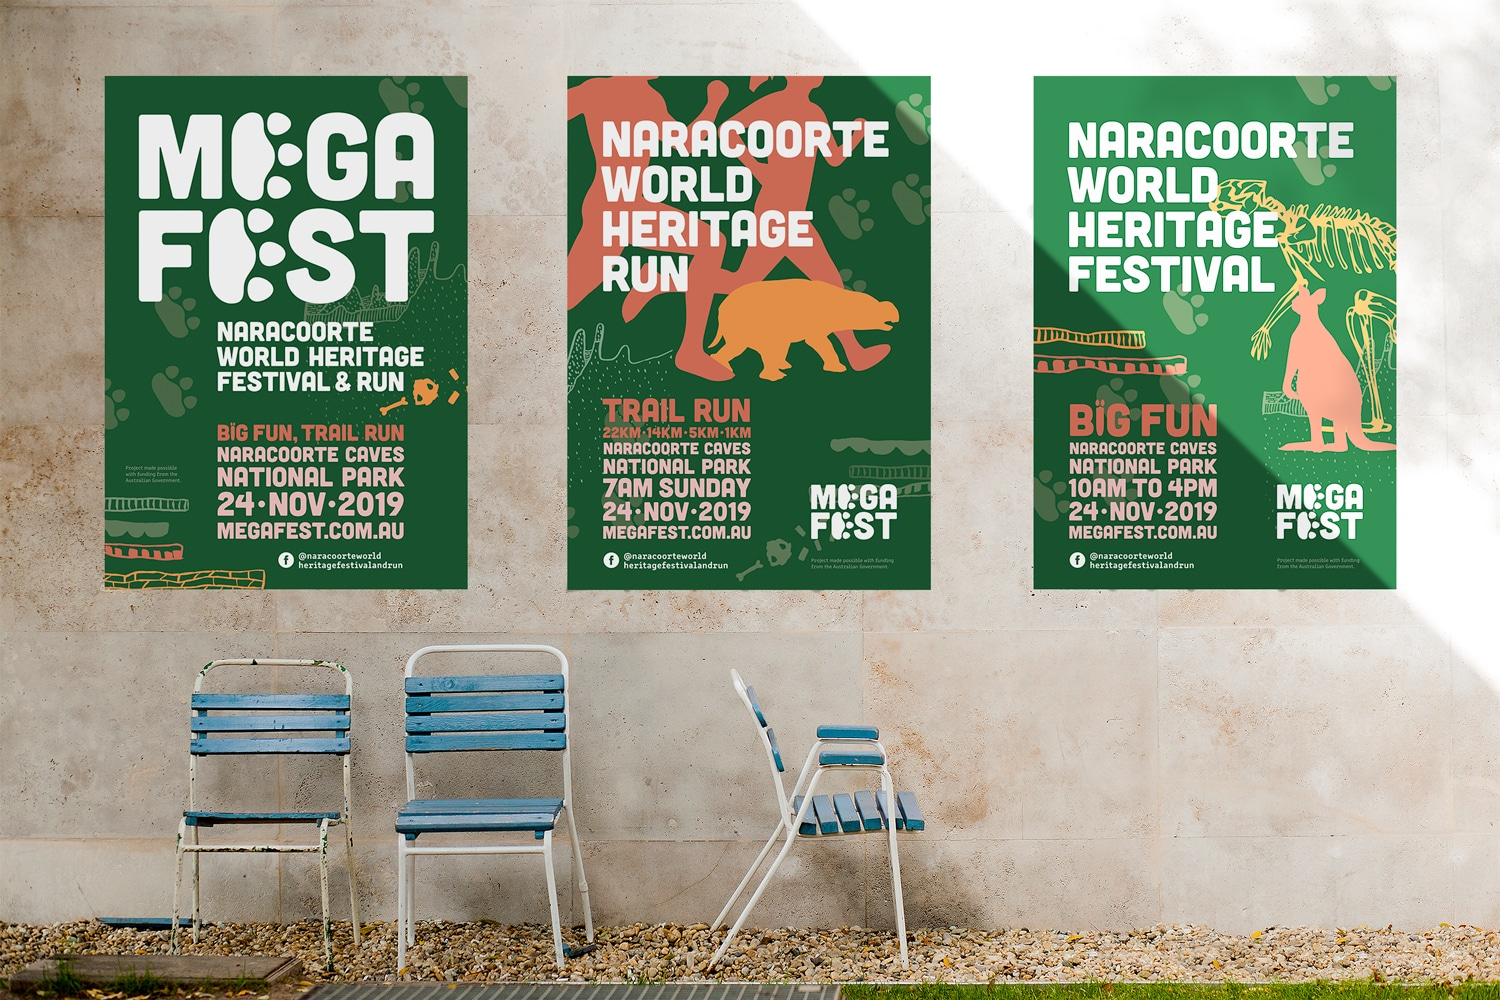 Mega Fest Naracoorte World Heritage Festival and Run 2019 posters graphic design Adelaide